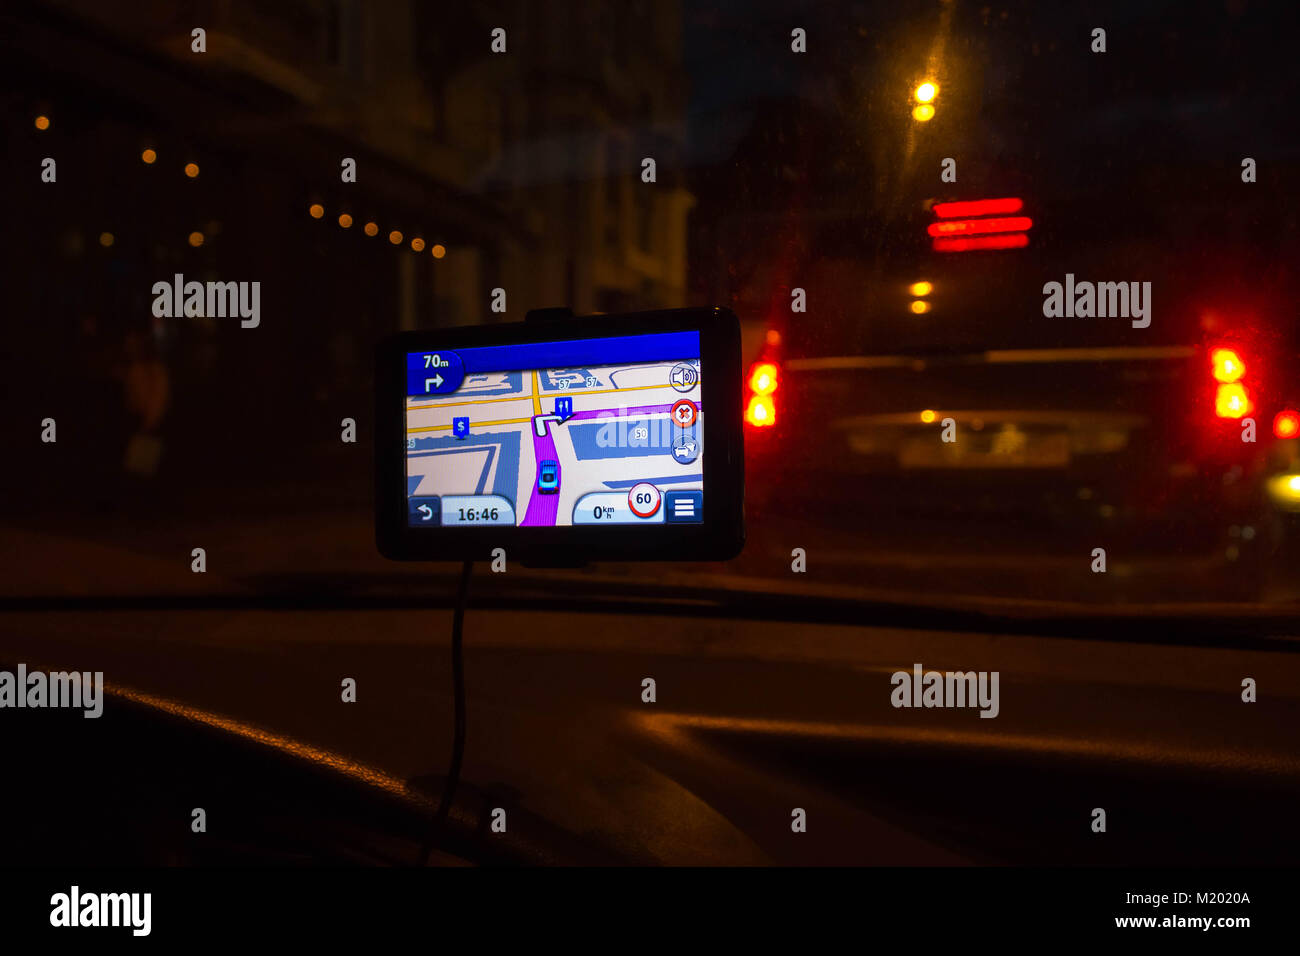 Navigation system in car Stock Photo